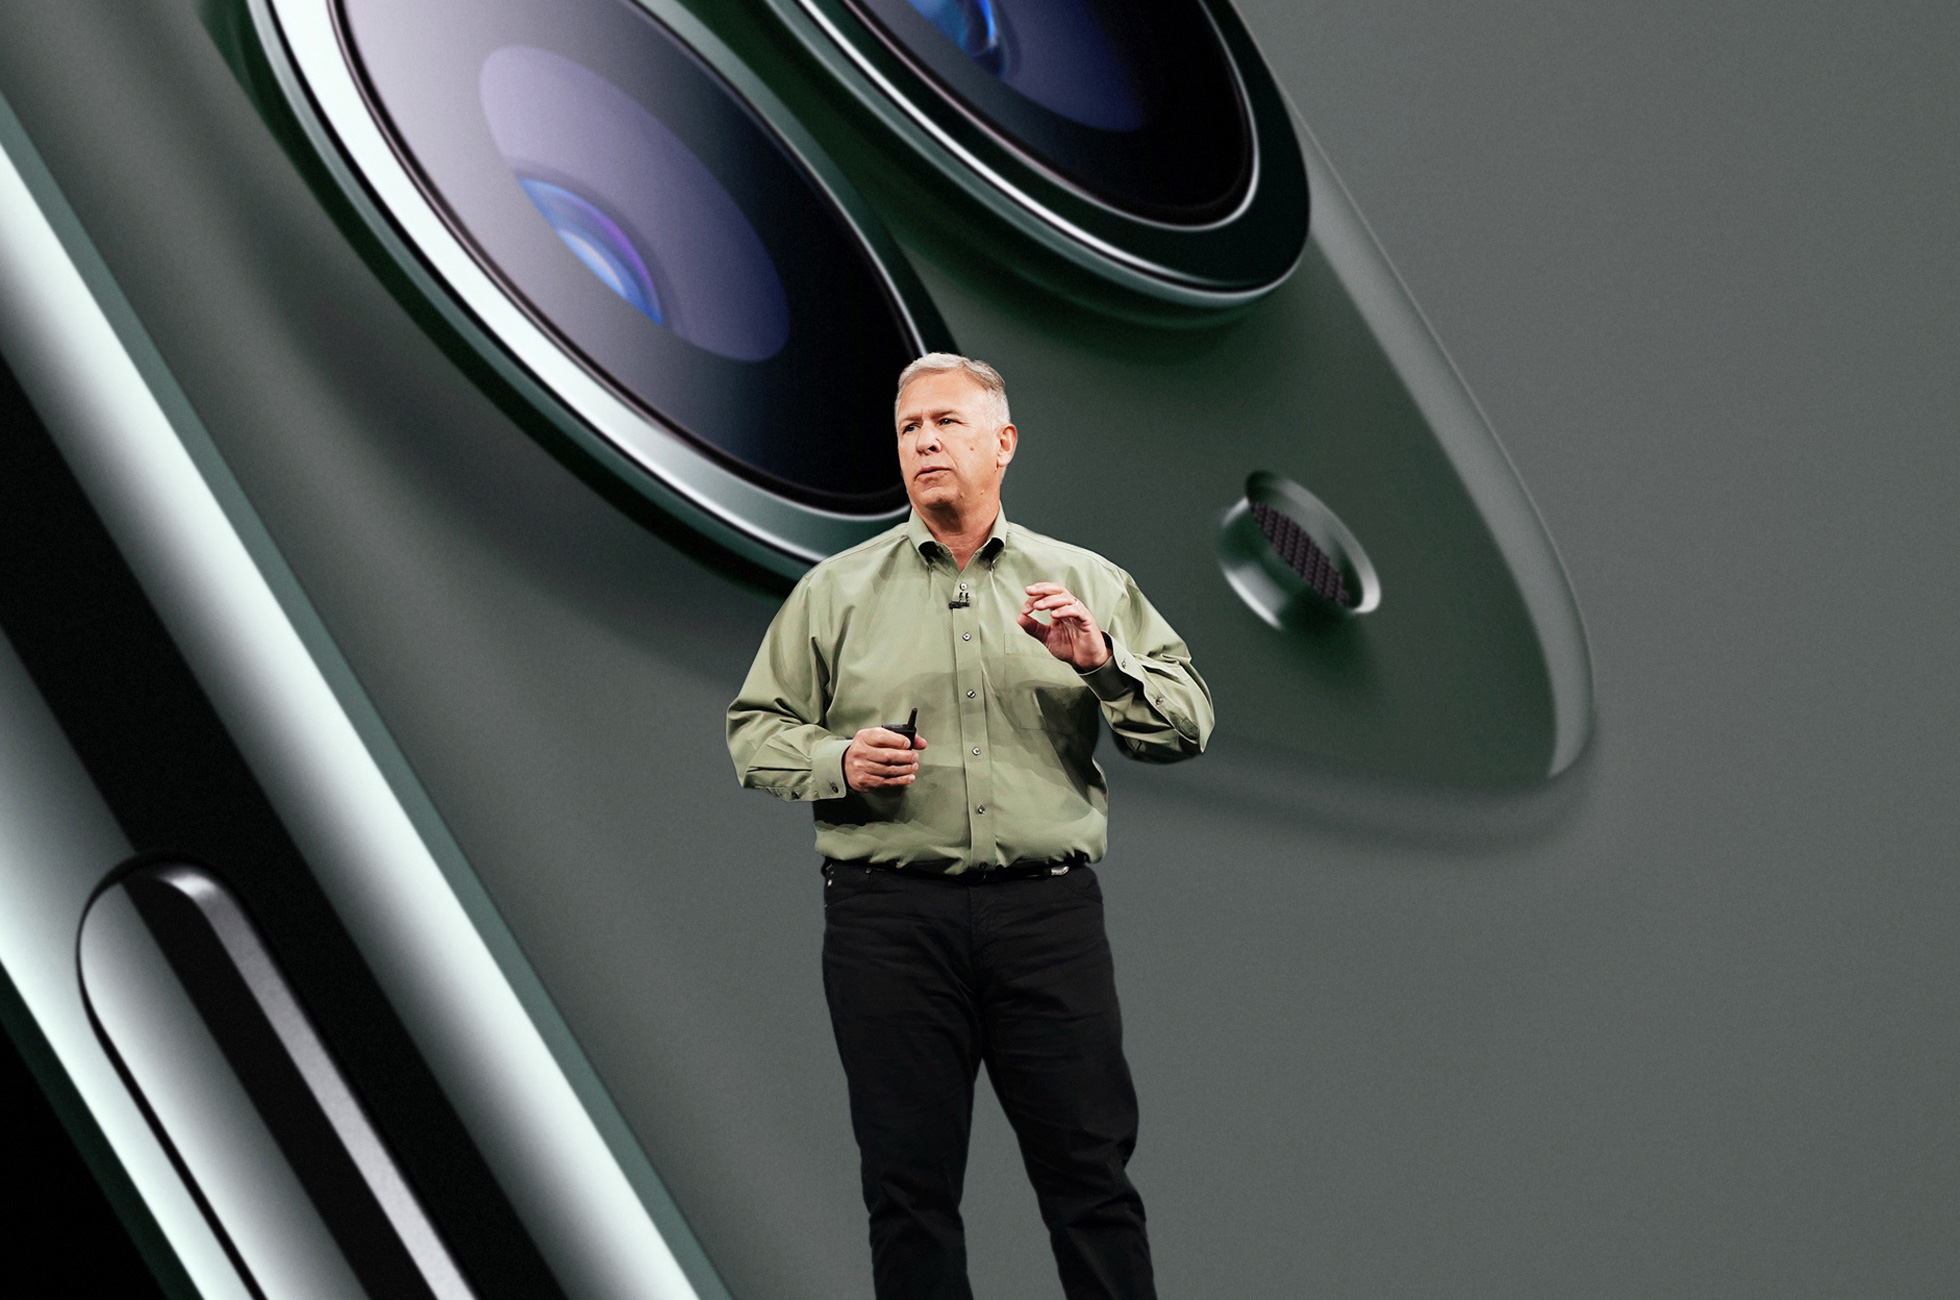 Apple senior vice president Phil Schiller leaves marketing role, transitions to Apple Fellow.